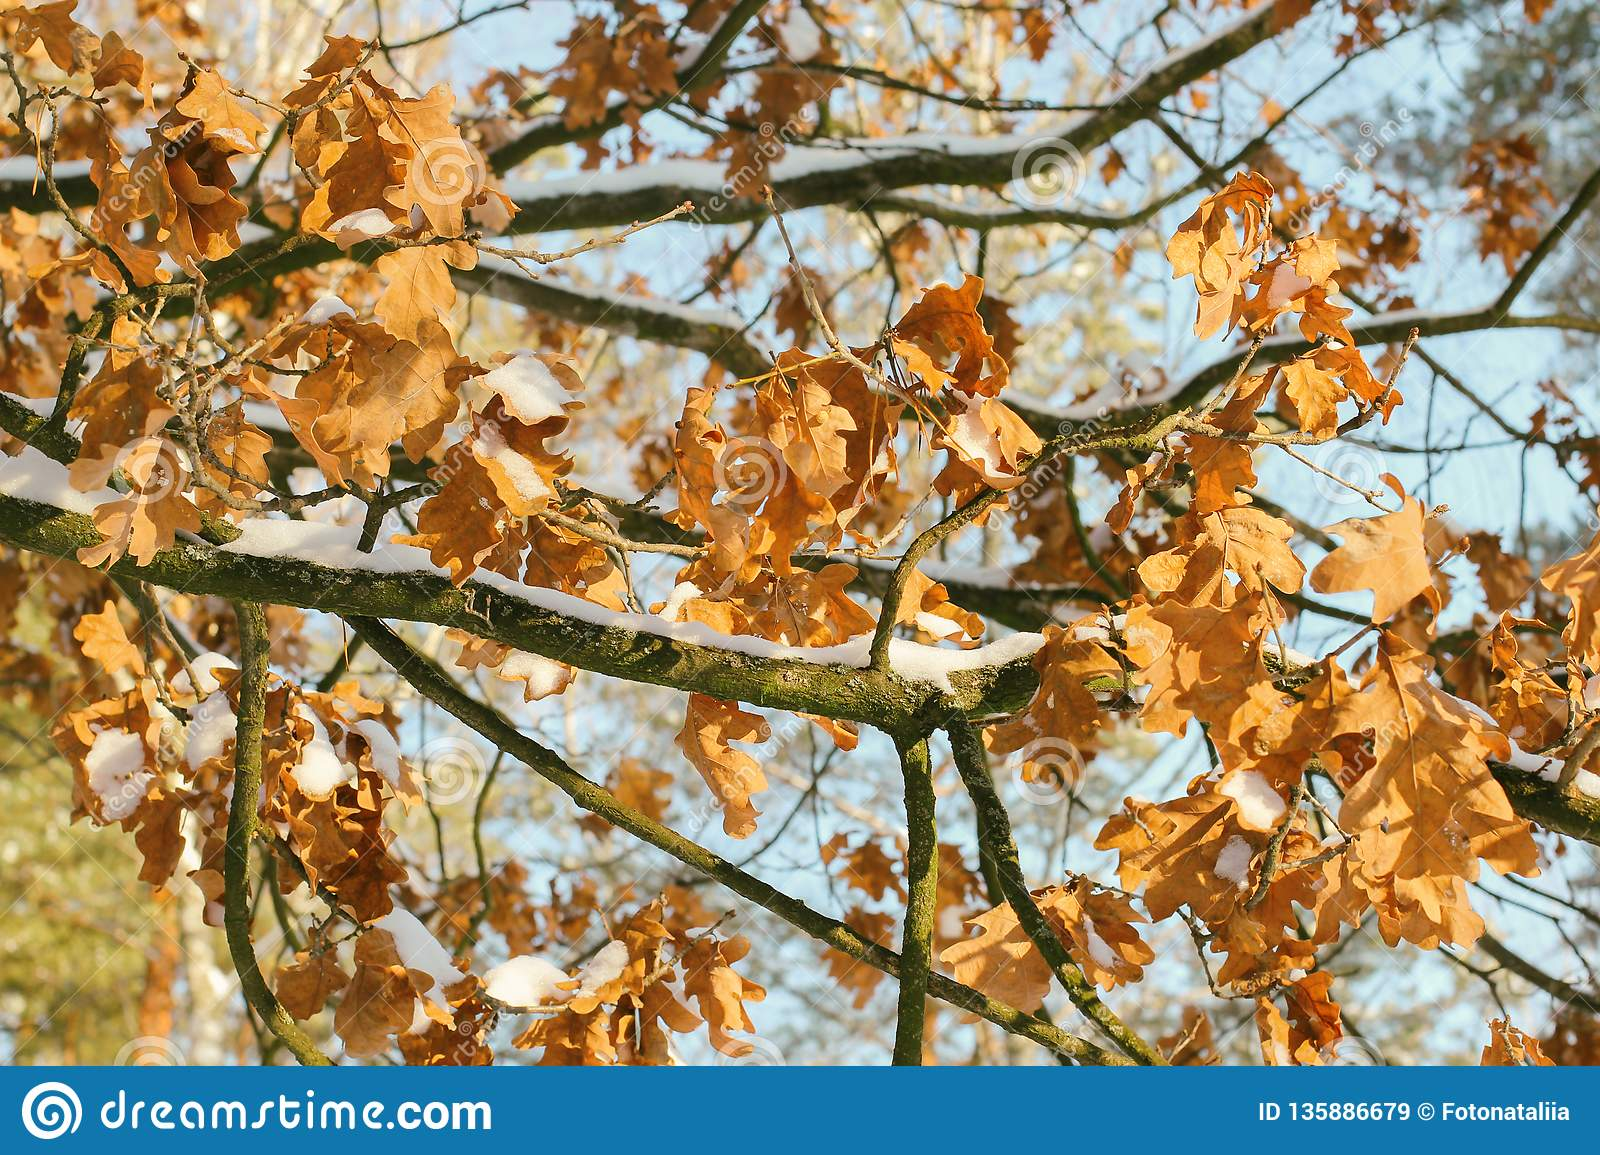 Beautiful Branch With Orange And Yellow Leaves In Late Fall